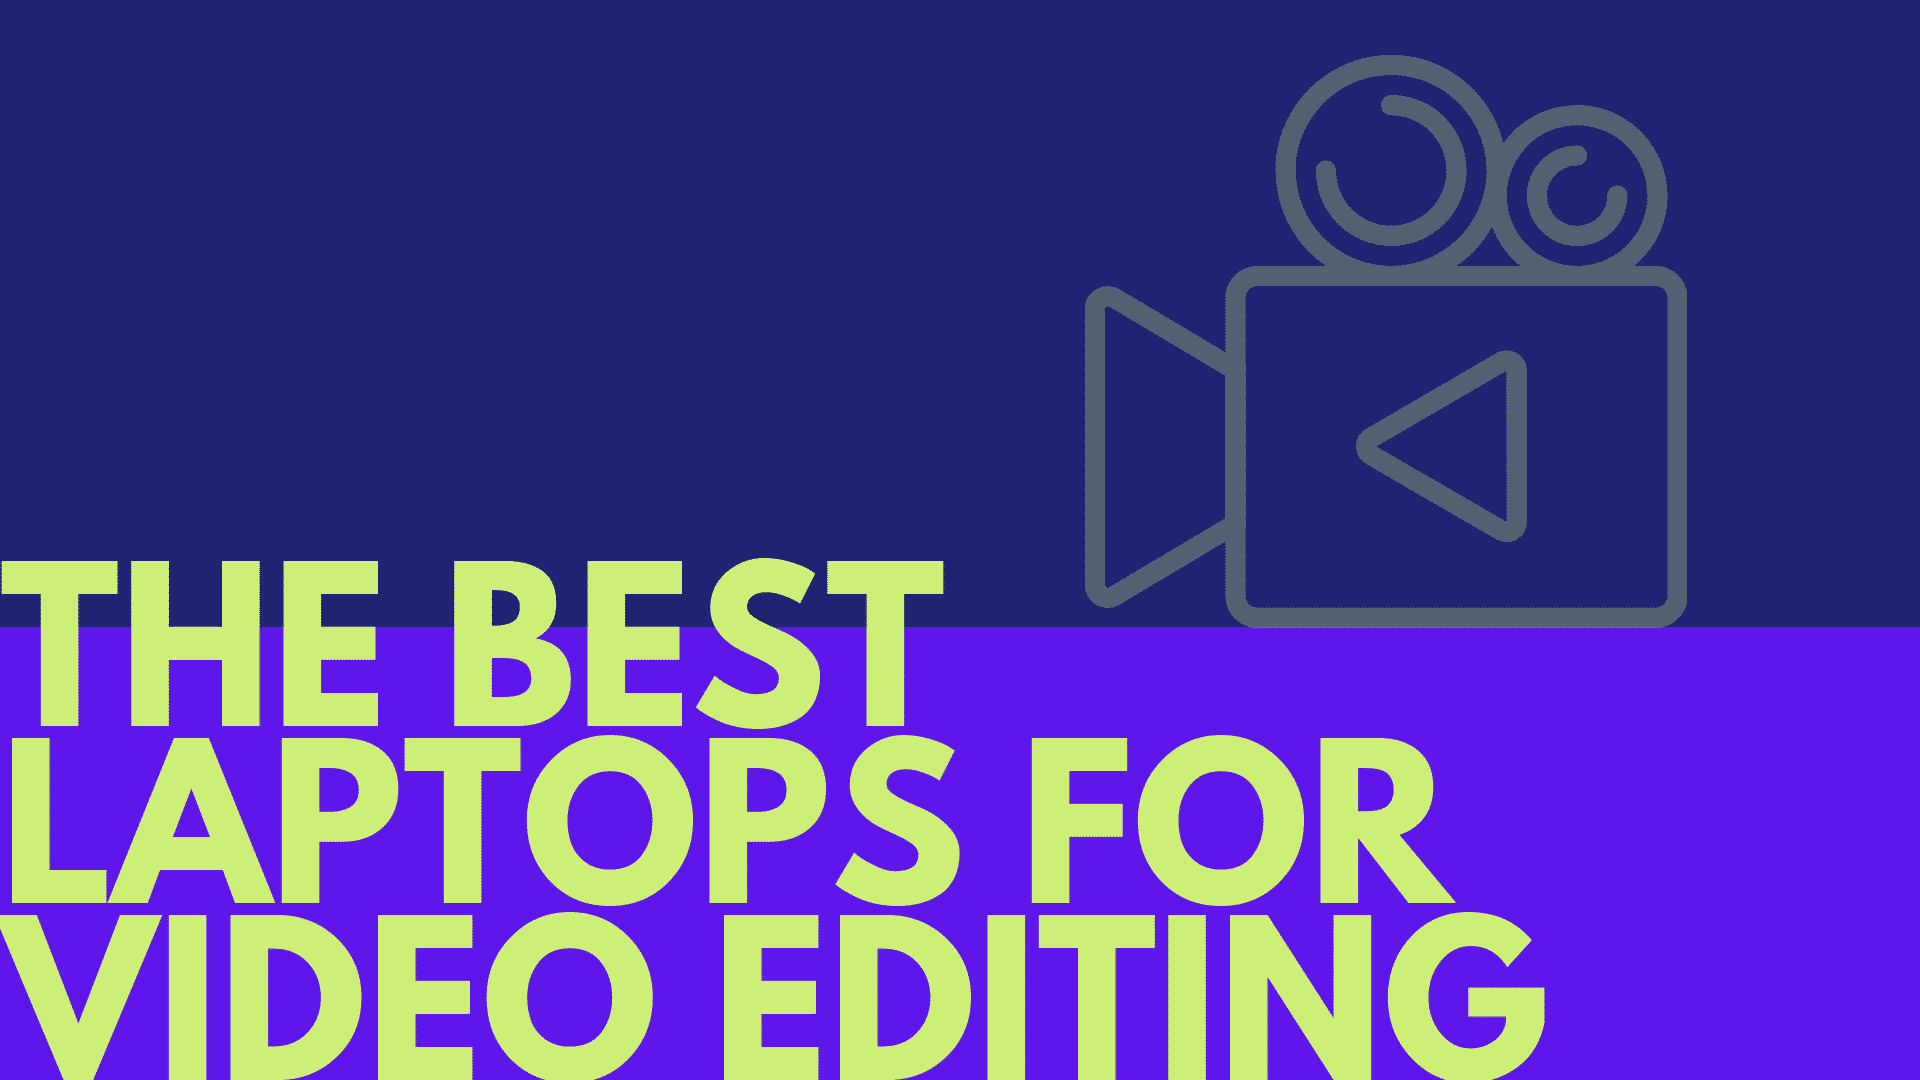 7+ Best Laptops for Video Editing in 2021